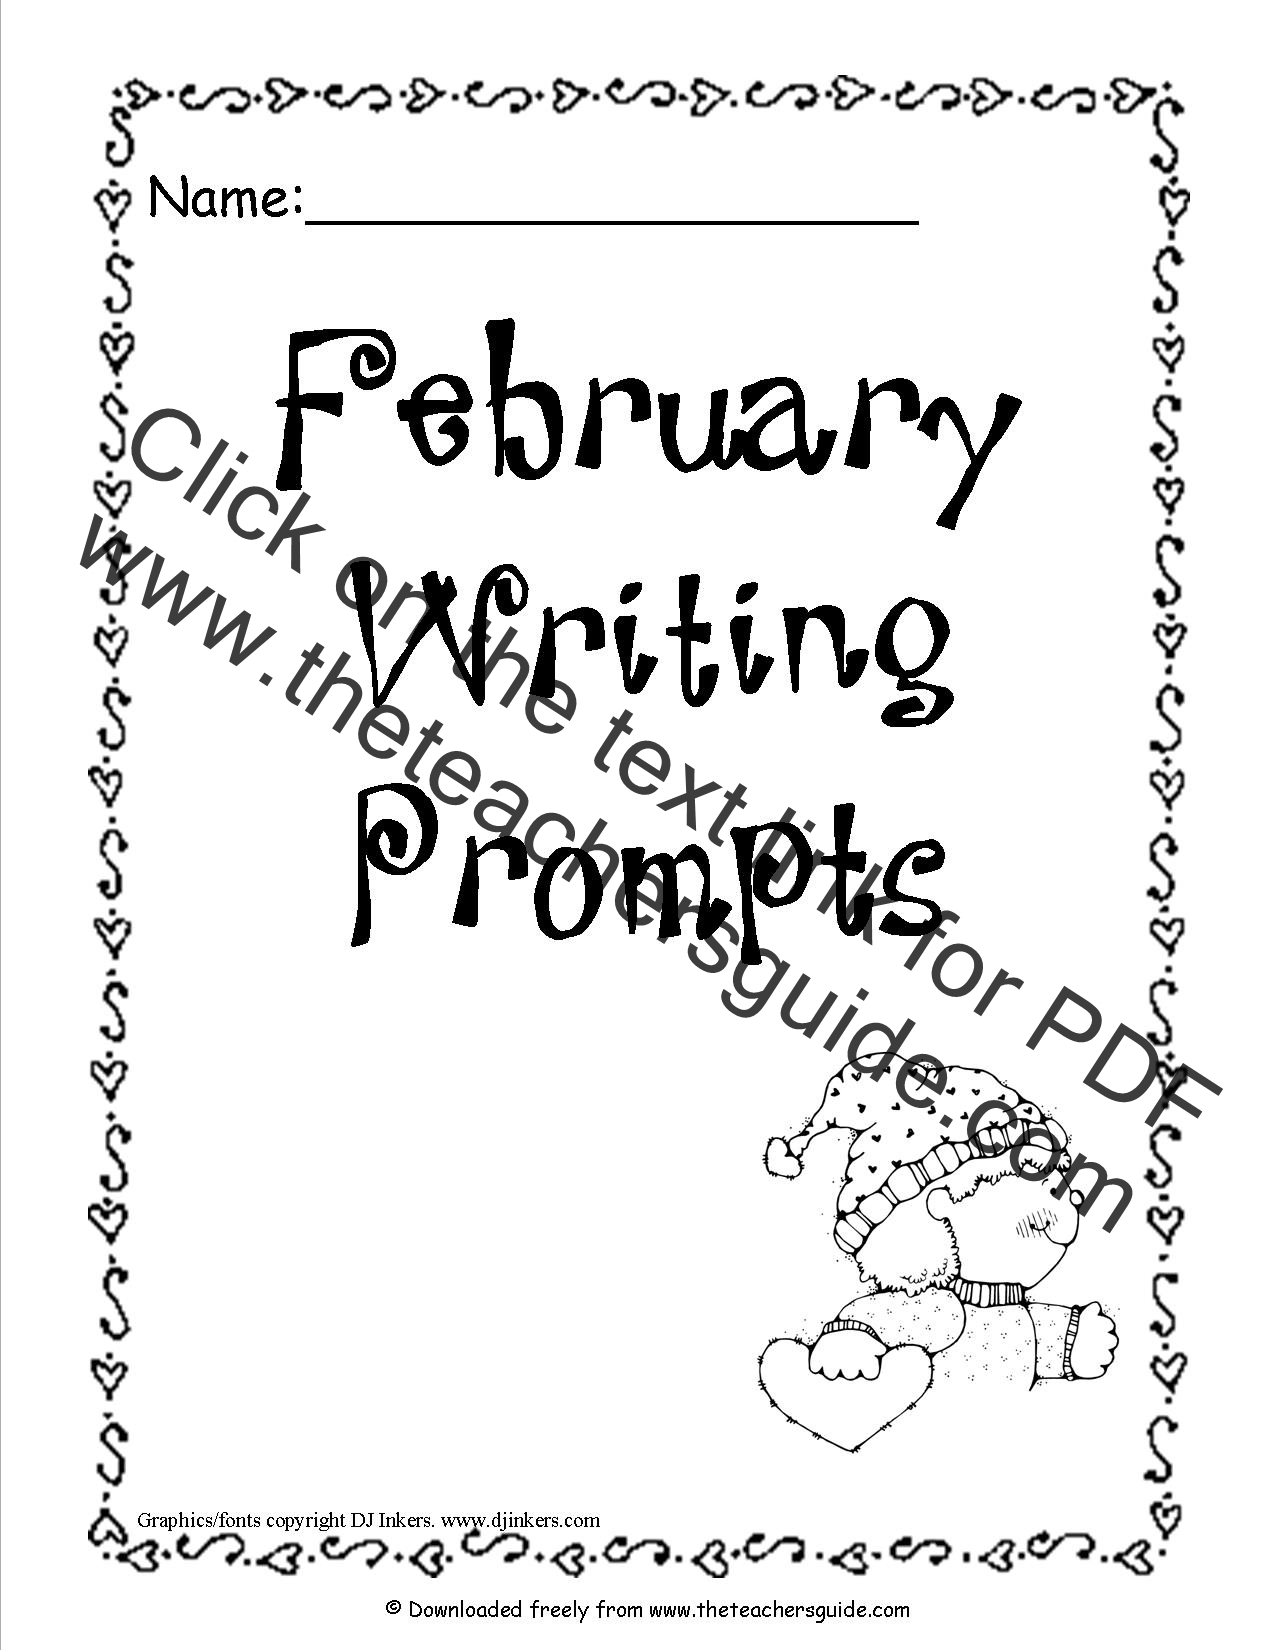 February Printable Worksheets Page 1